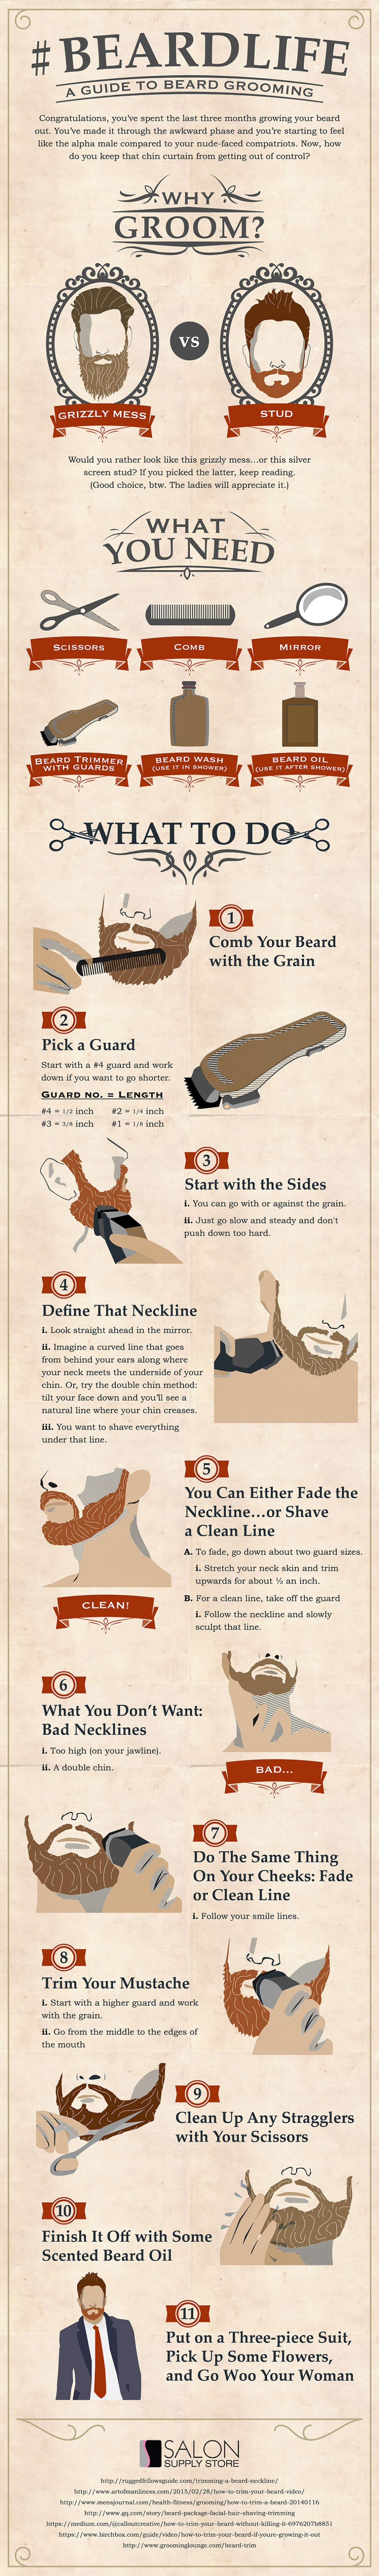 infographic-guide-well-groomed-beard